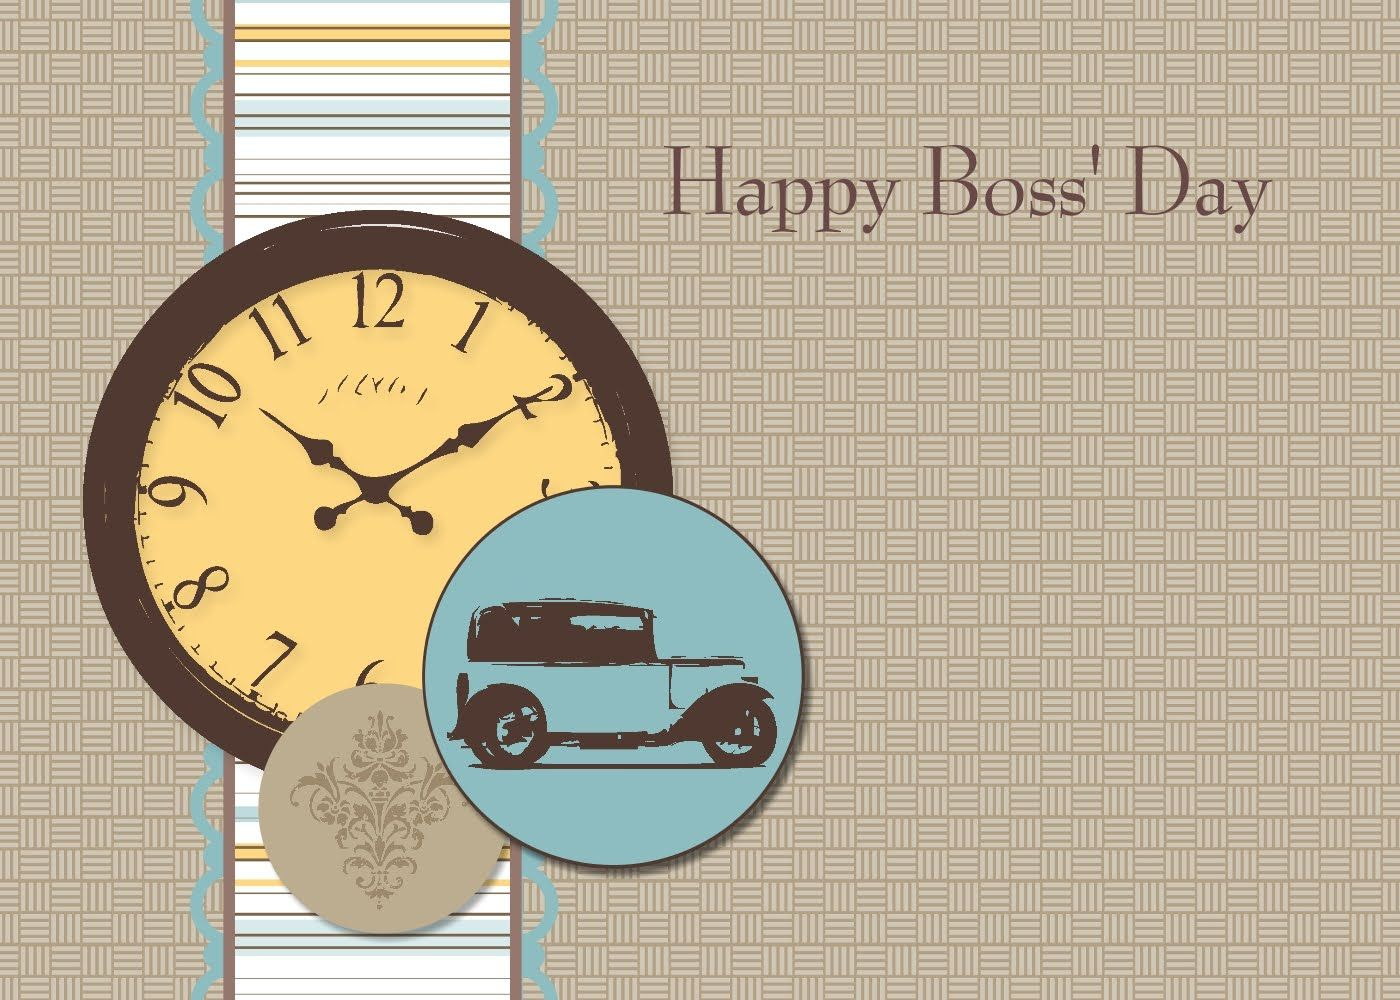 boss' day - - Yahoo Image Search Results